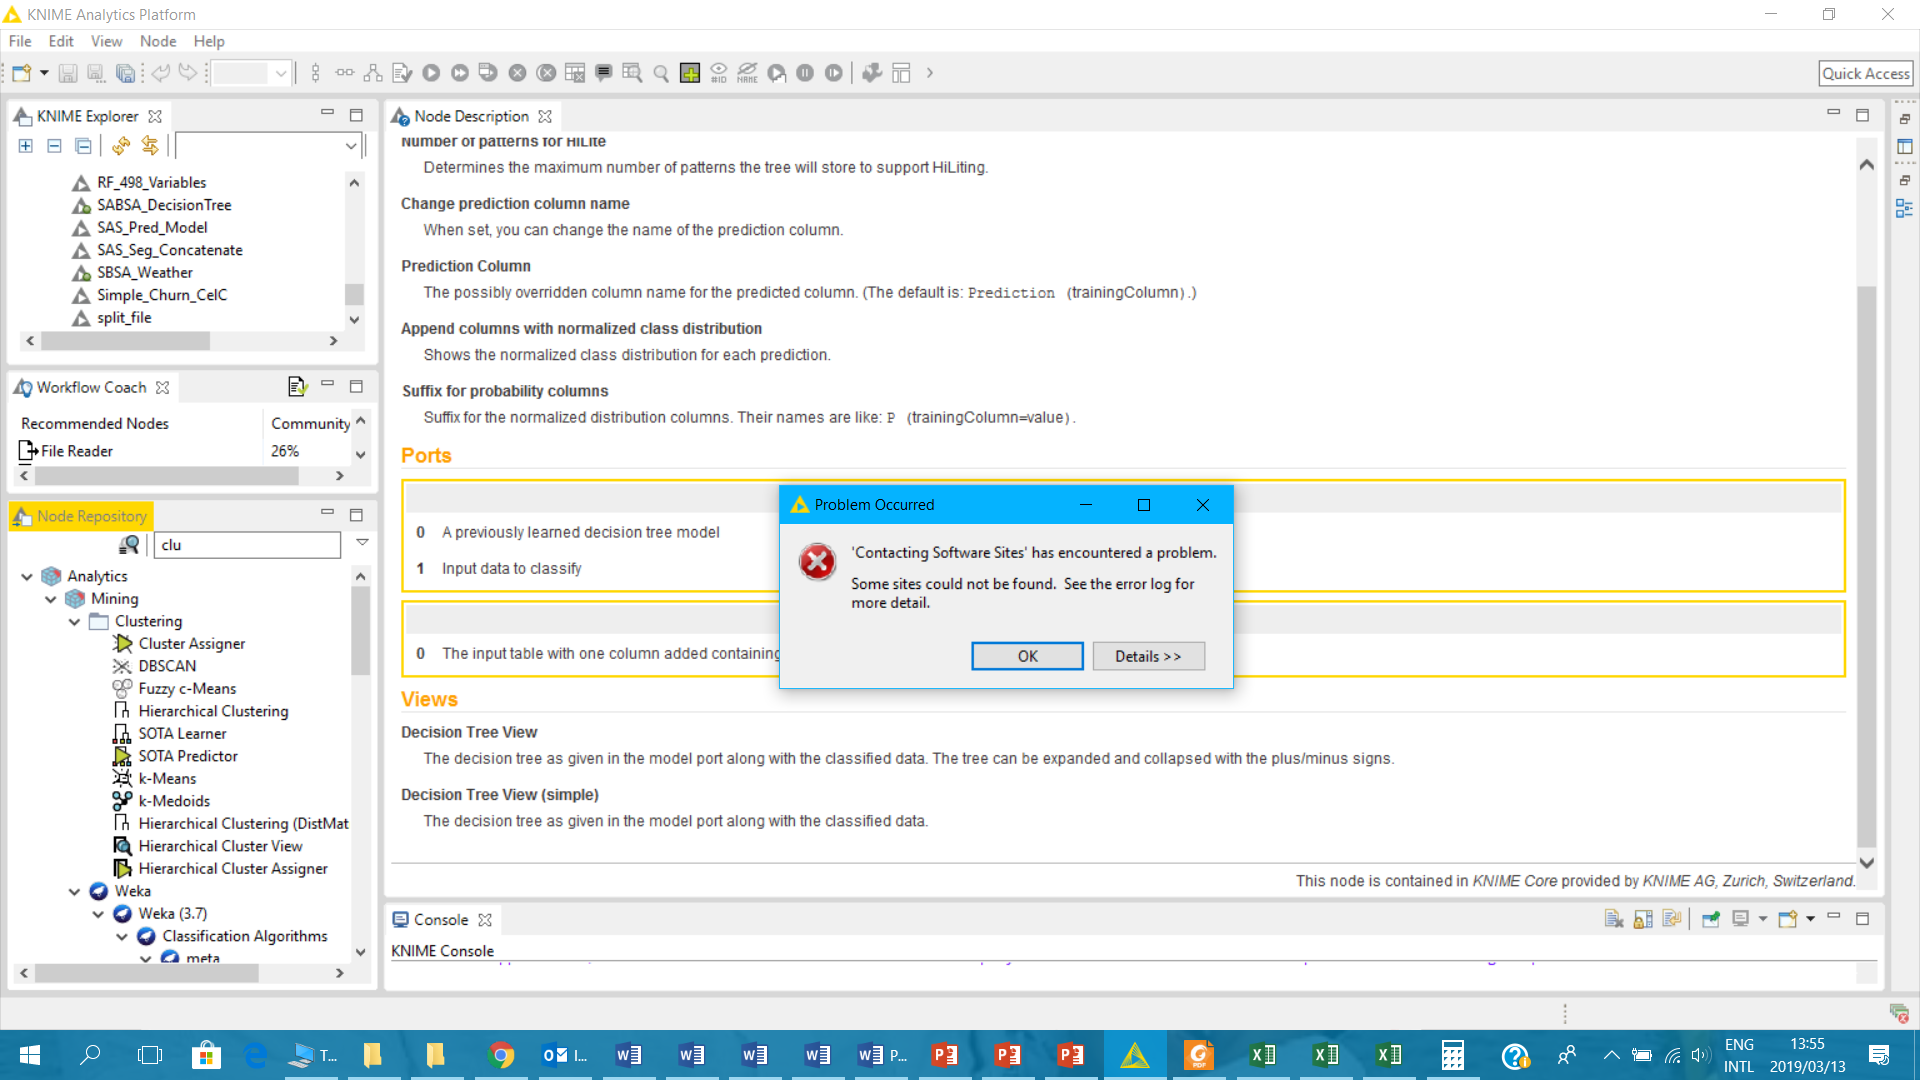 Failing to install extensions - KNIME Extensions - KNIME